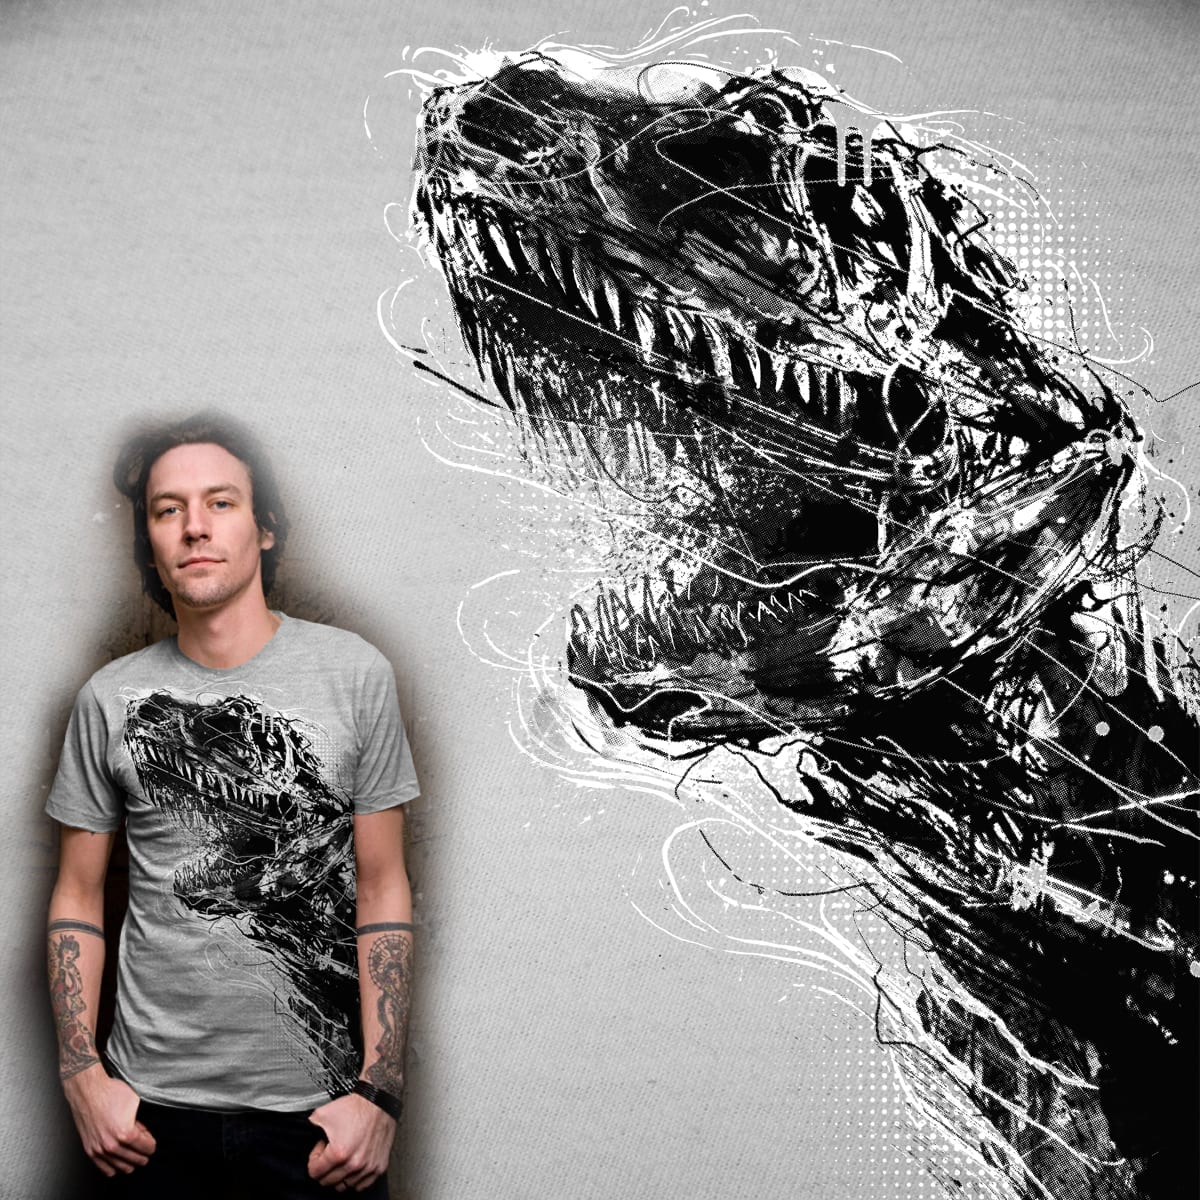 Killing machine by barmalisiRTB on Threadless